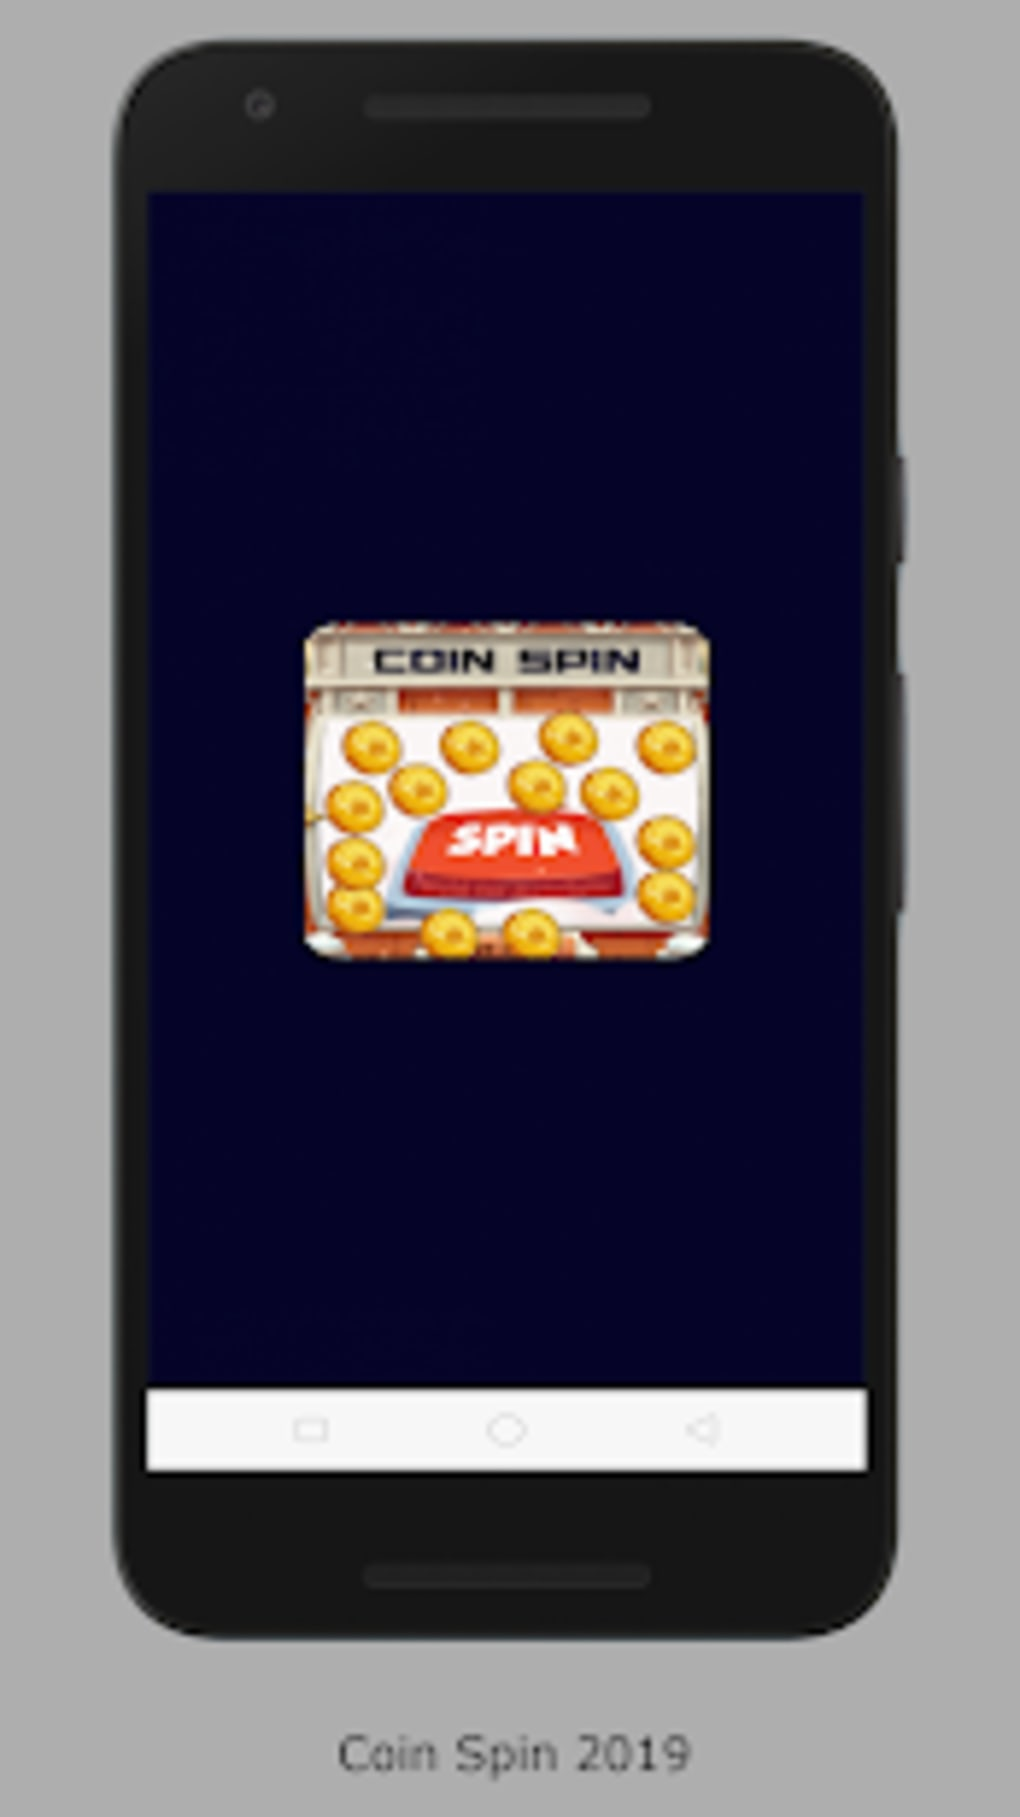 coin and spin app